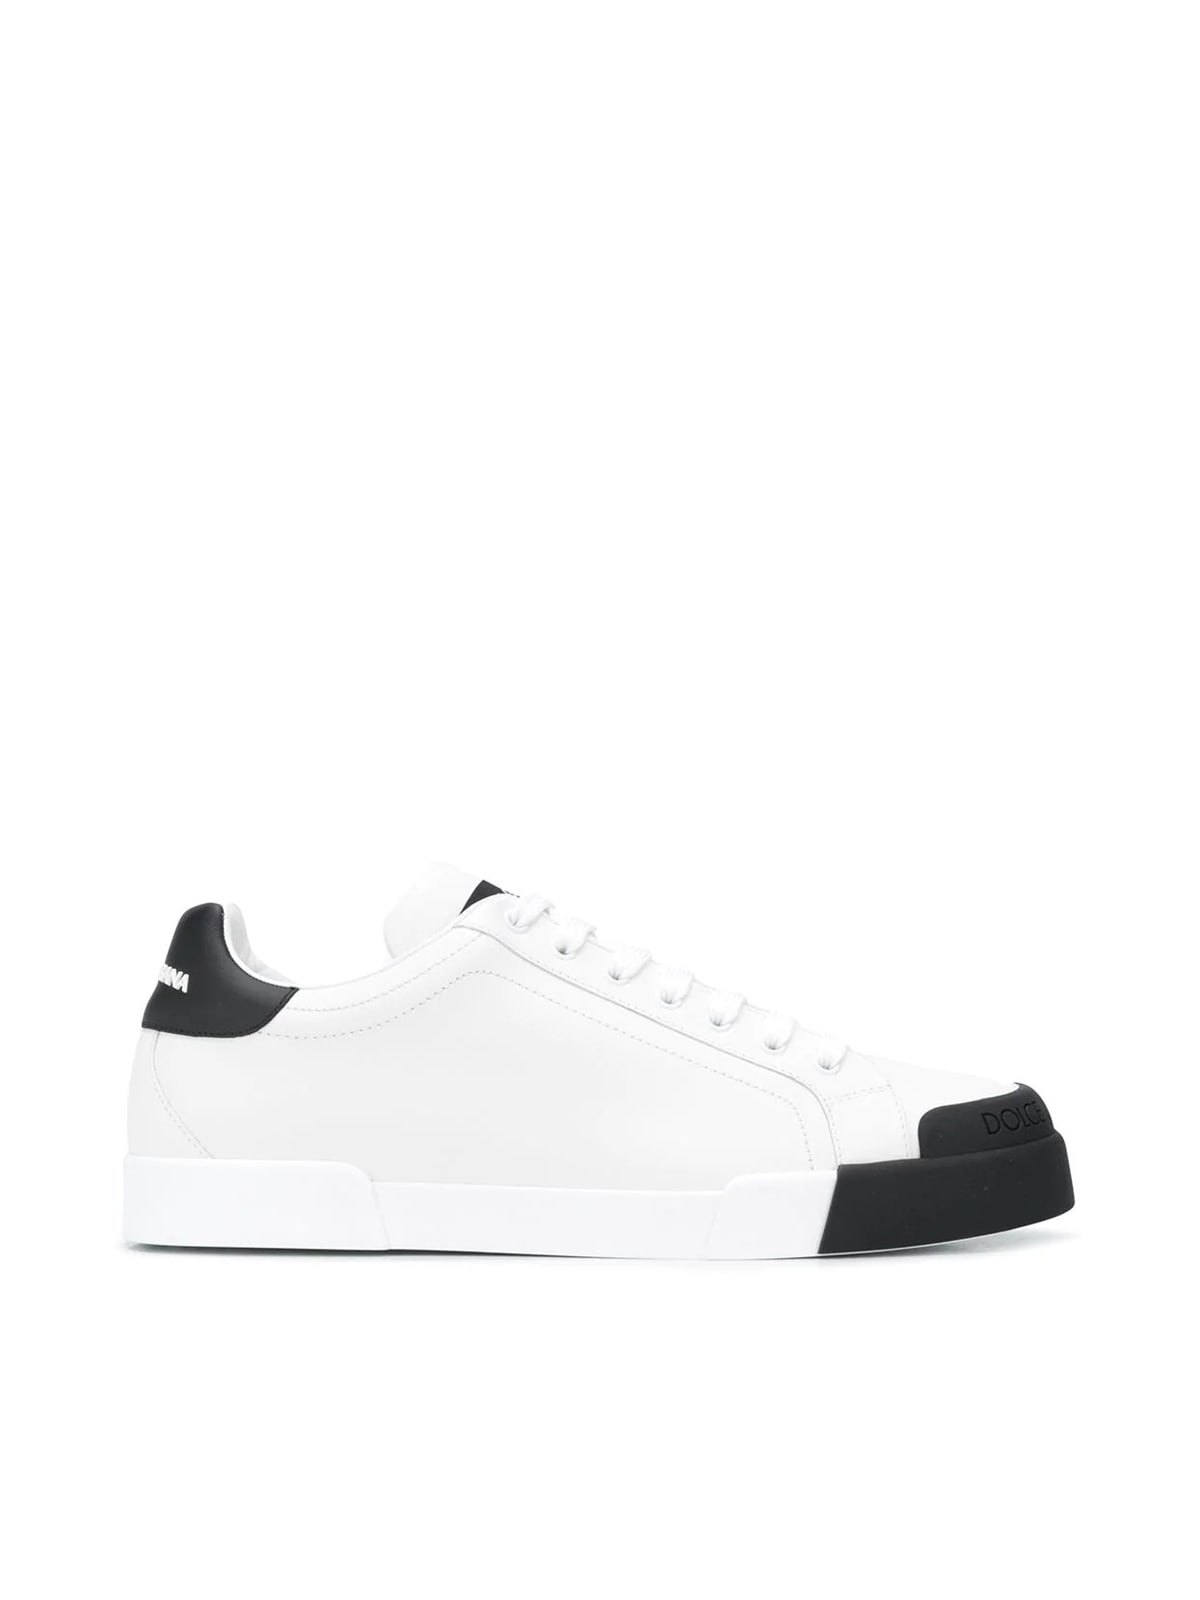 Dolce & Gabbana Sneakers Lowtop